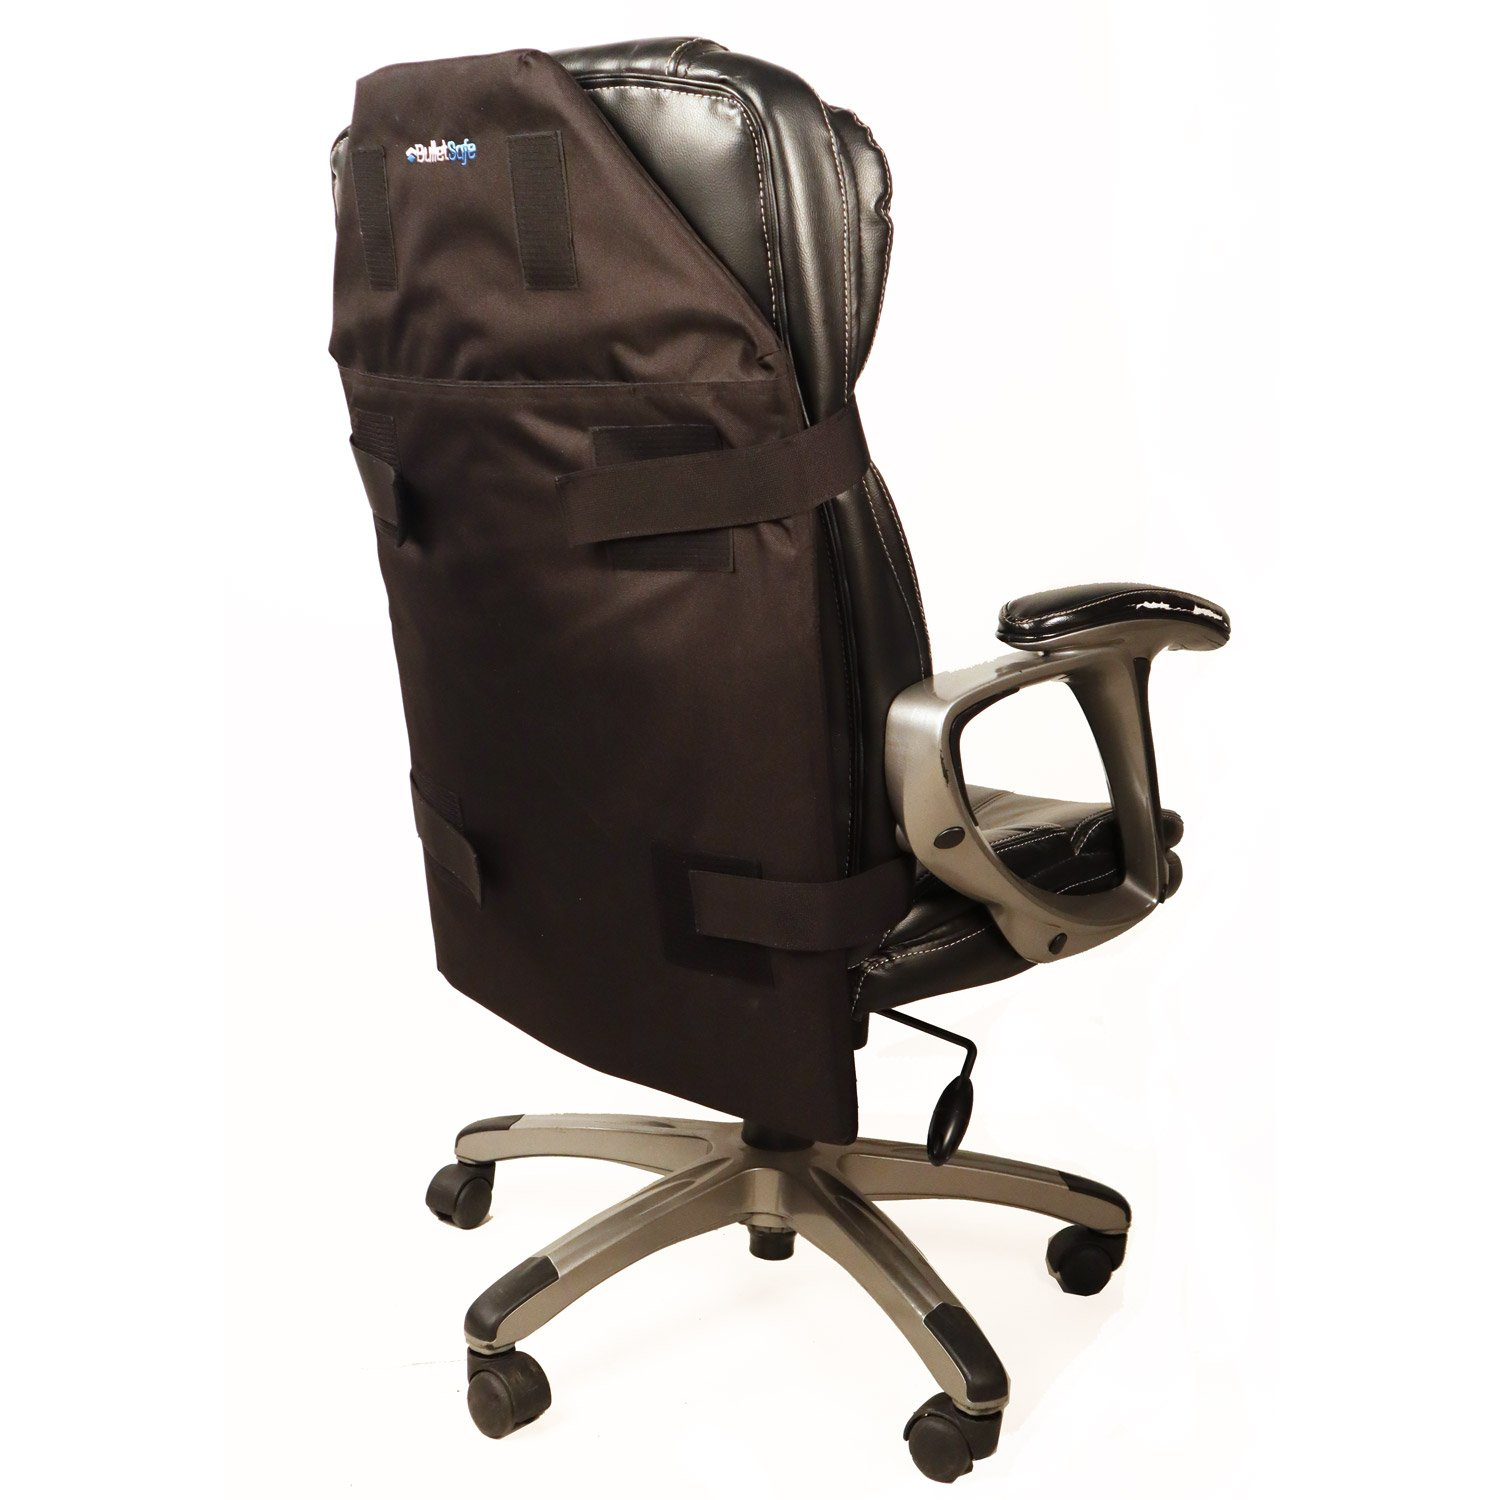 Protecto Panel attached to the back of an office chair